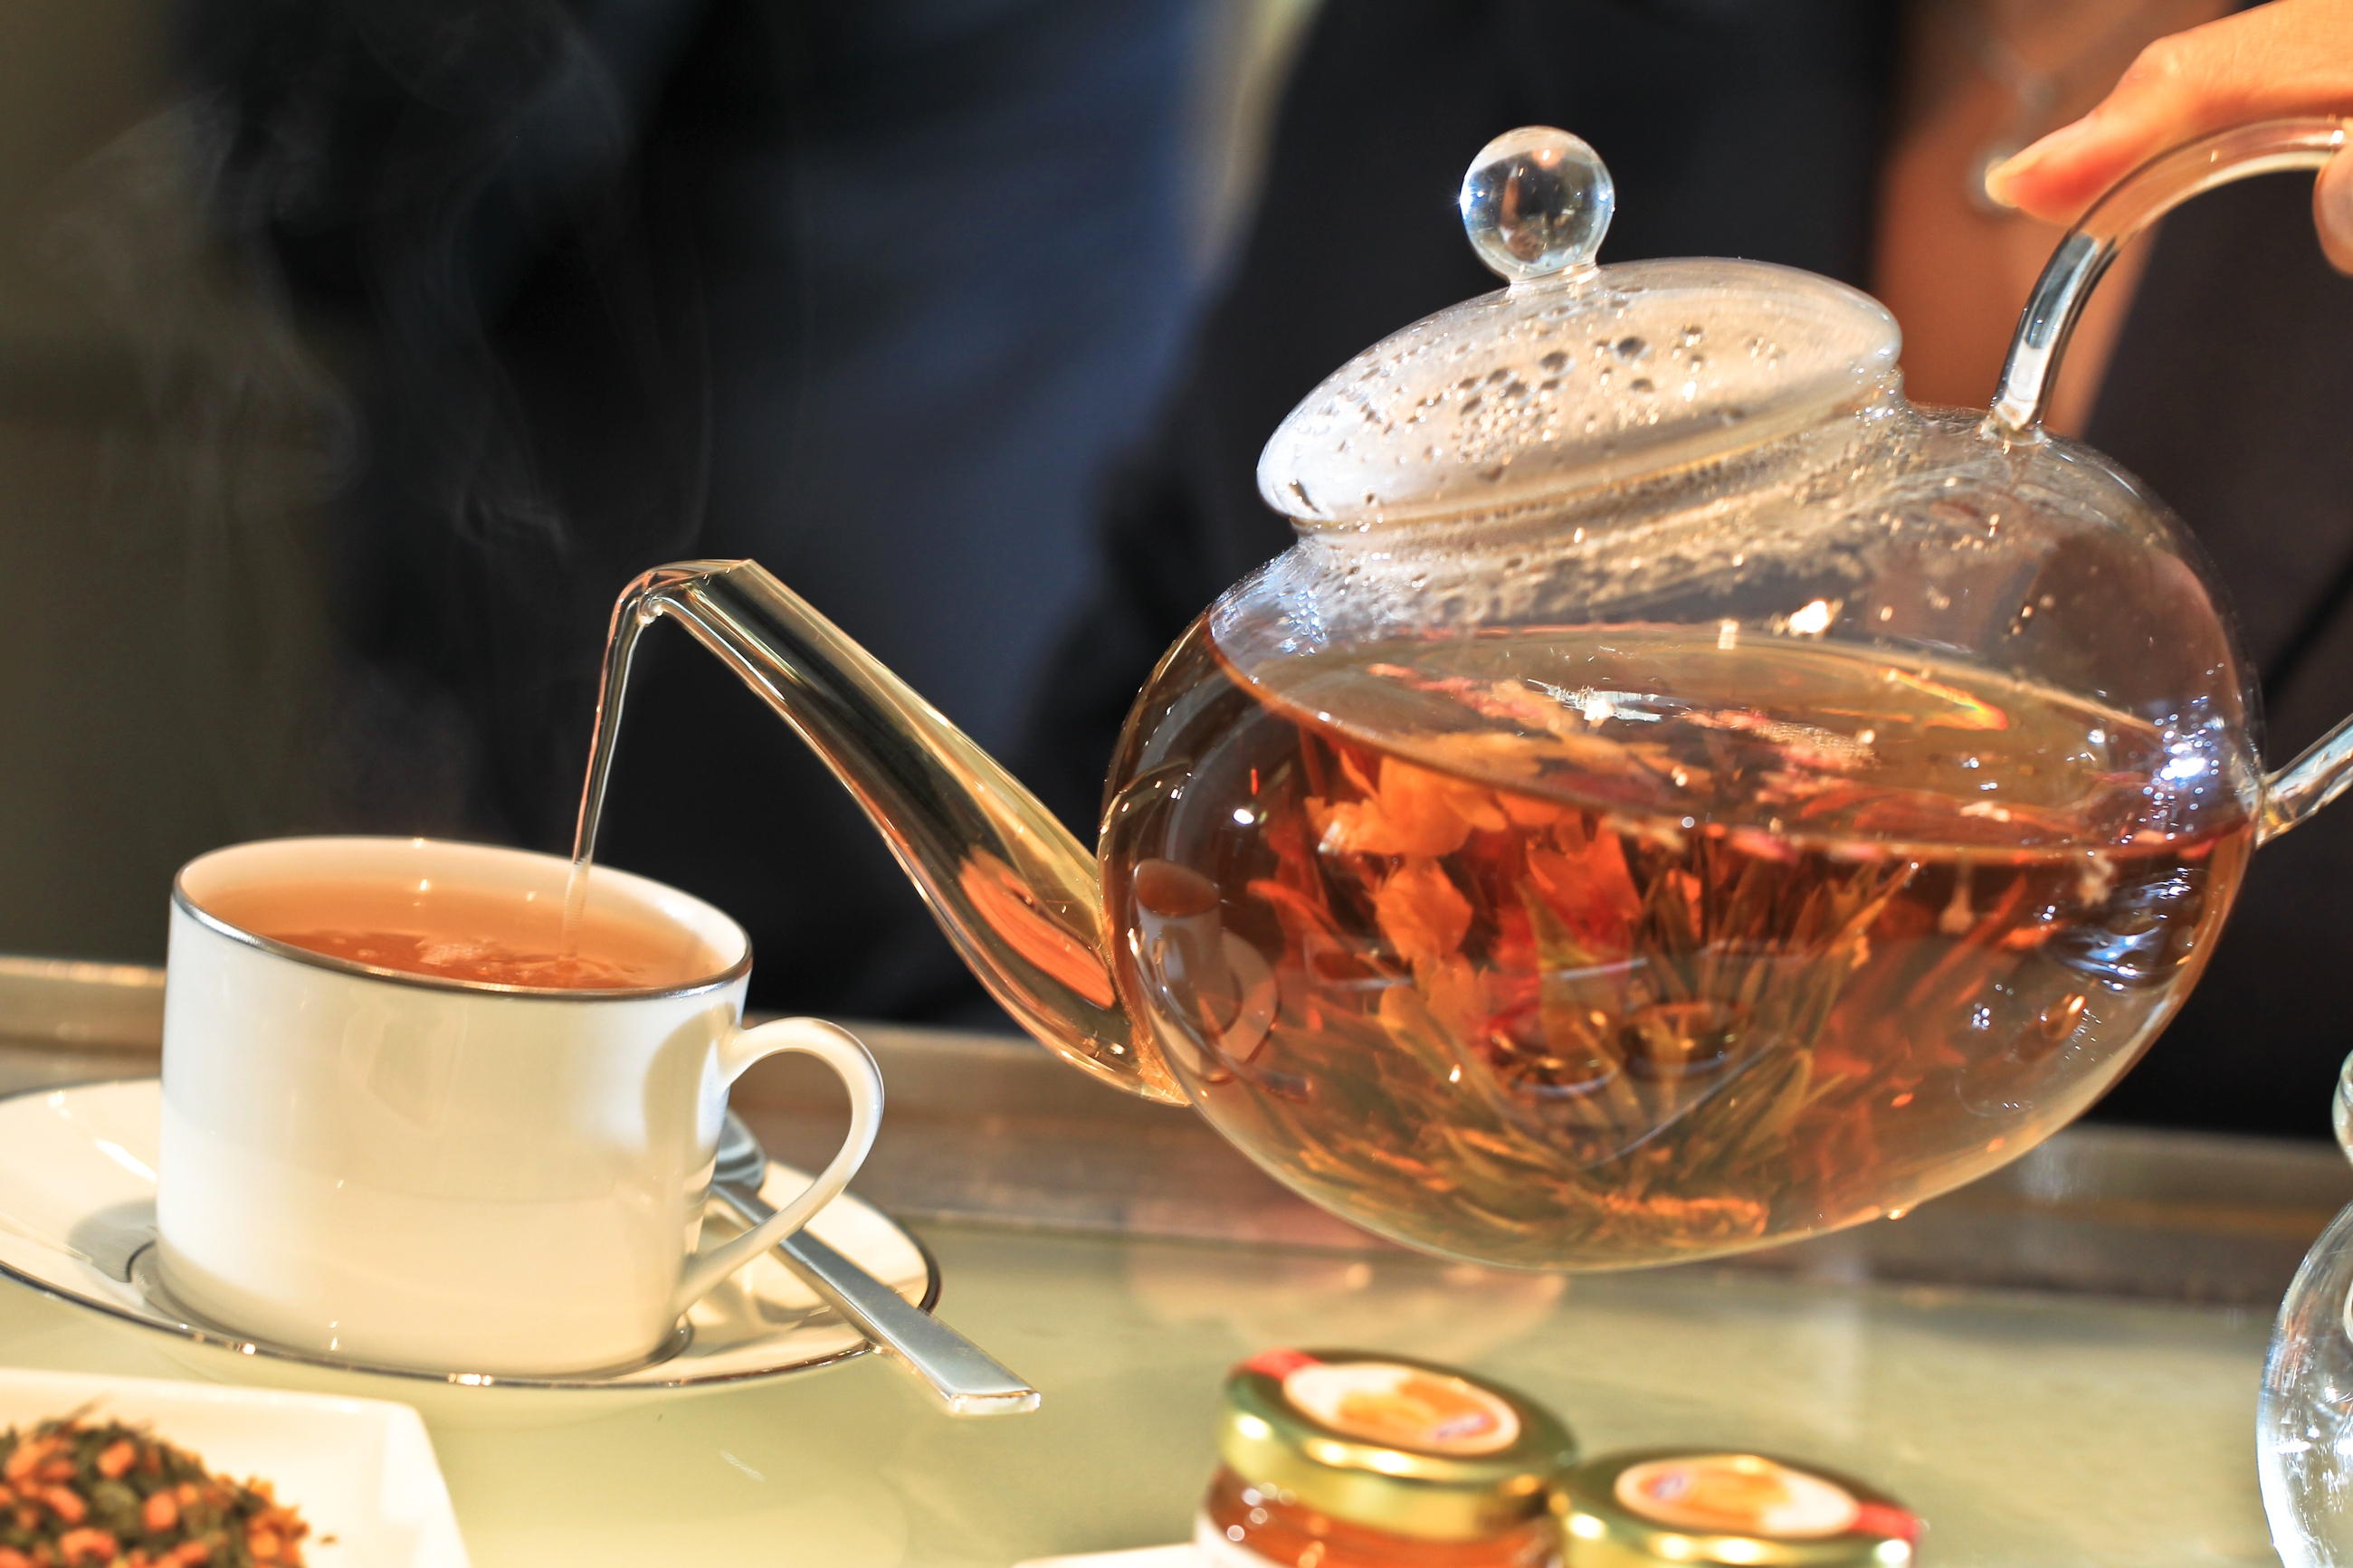 The Park Hyatt Washington is offering its Tea Table tea service in its tea cellar on weekends with savory and sweets to go with the tea. (Photo: Park Hyatt Washington)